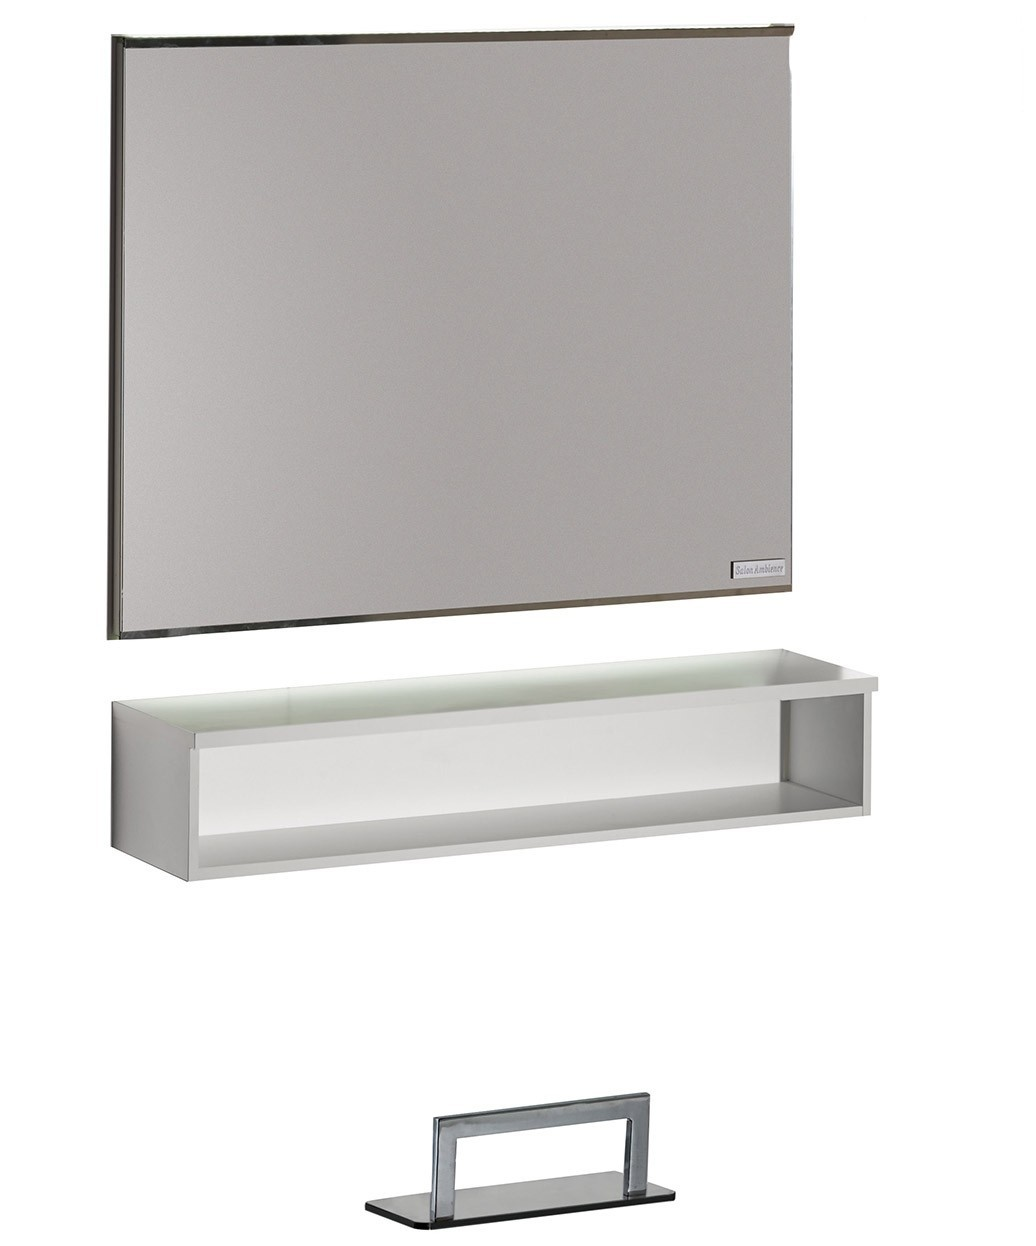 MI380 Horizon Mirror Styling Station with Storage